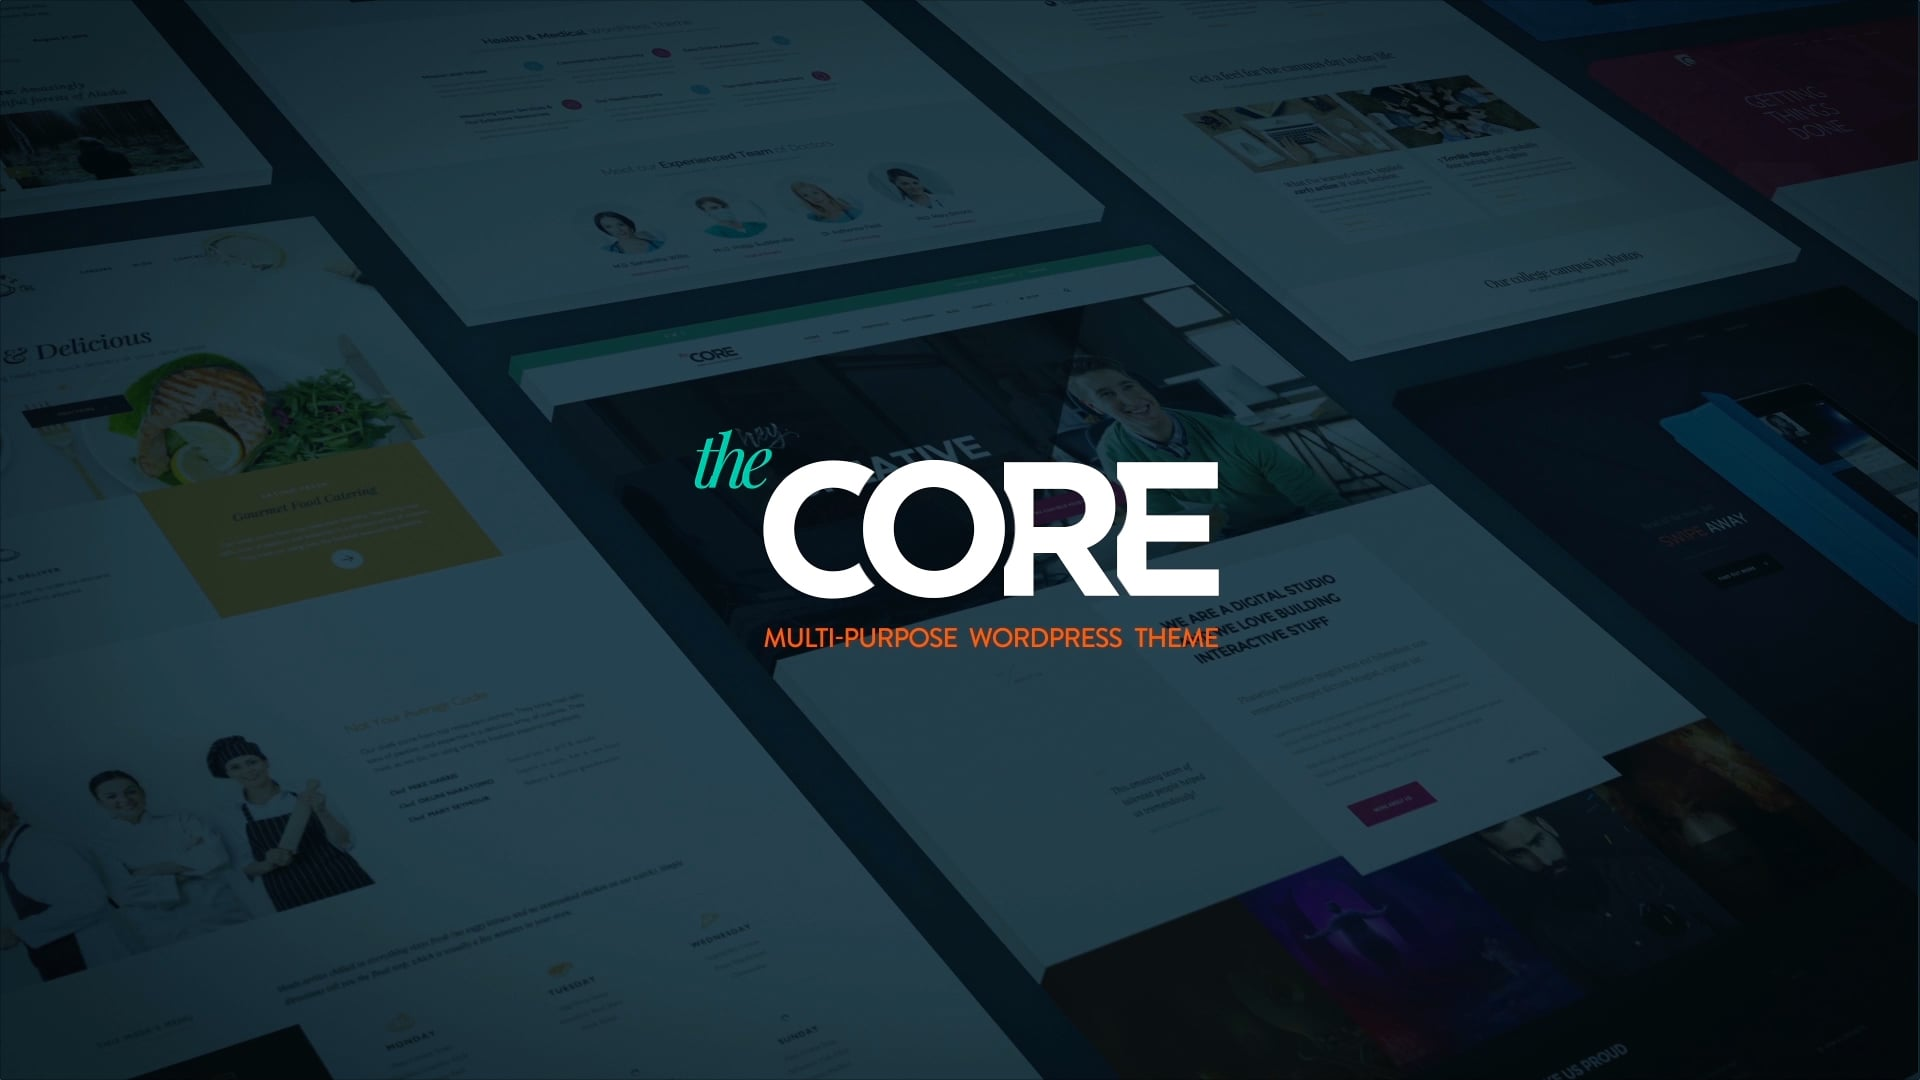 THE CORE WordPress Theme – Video Presentation